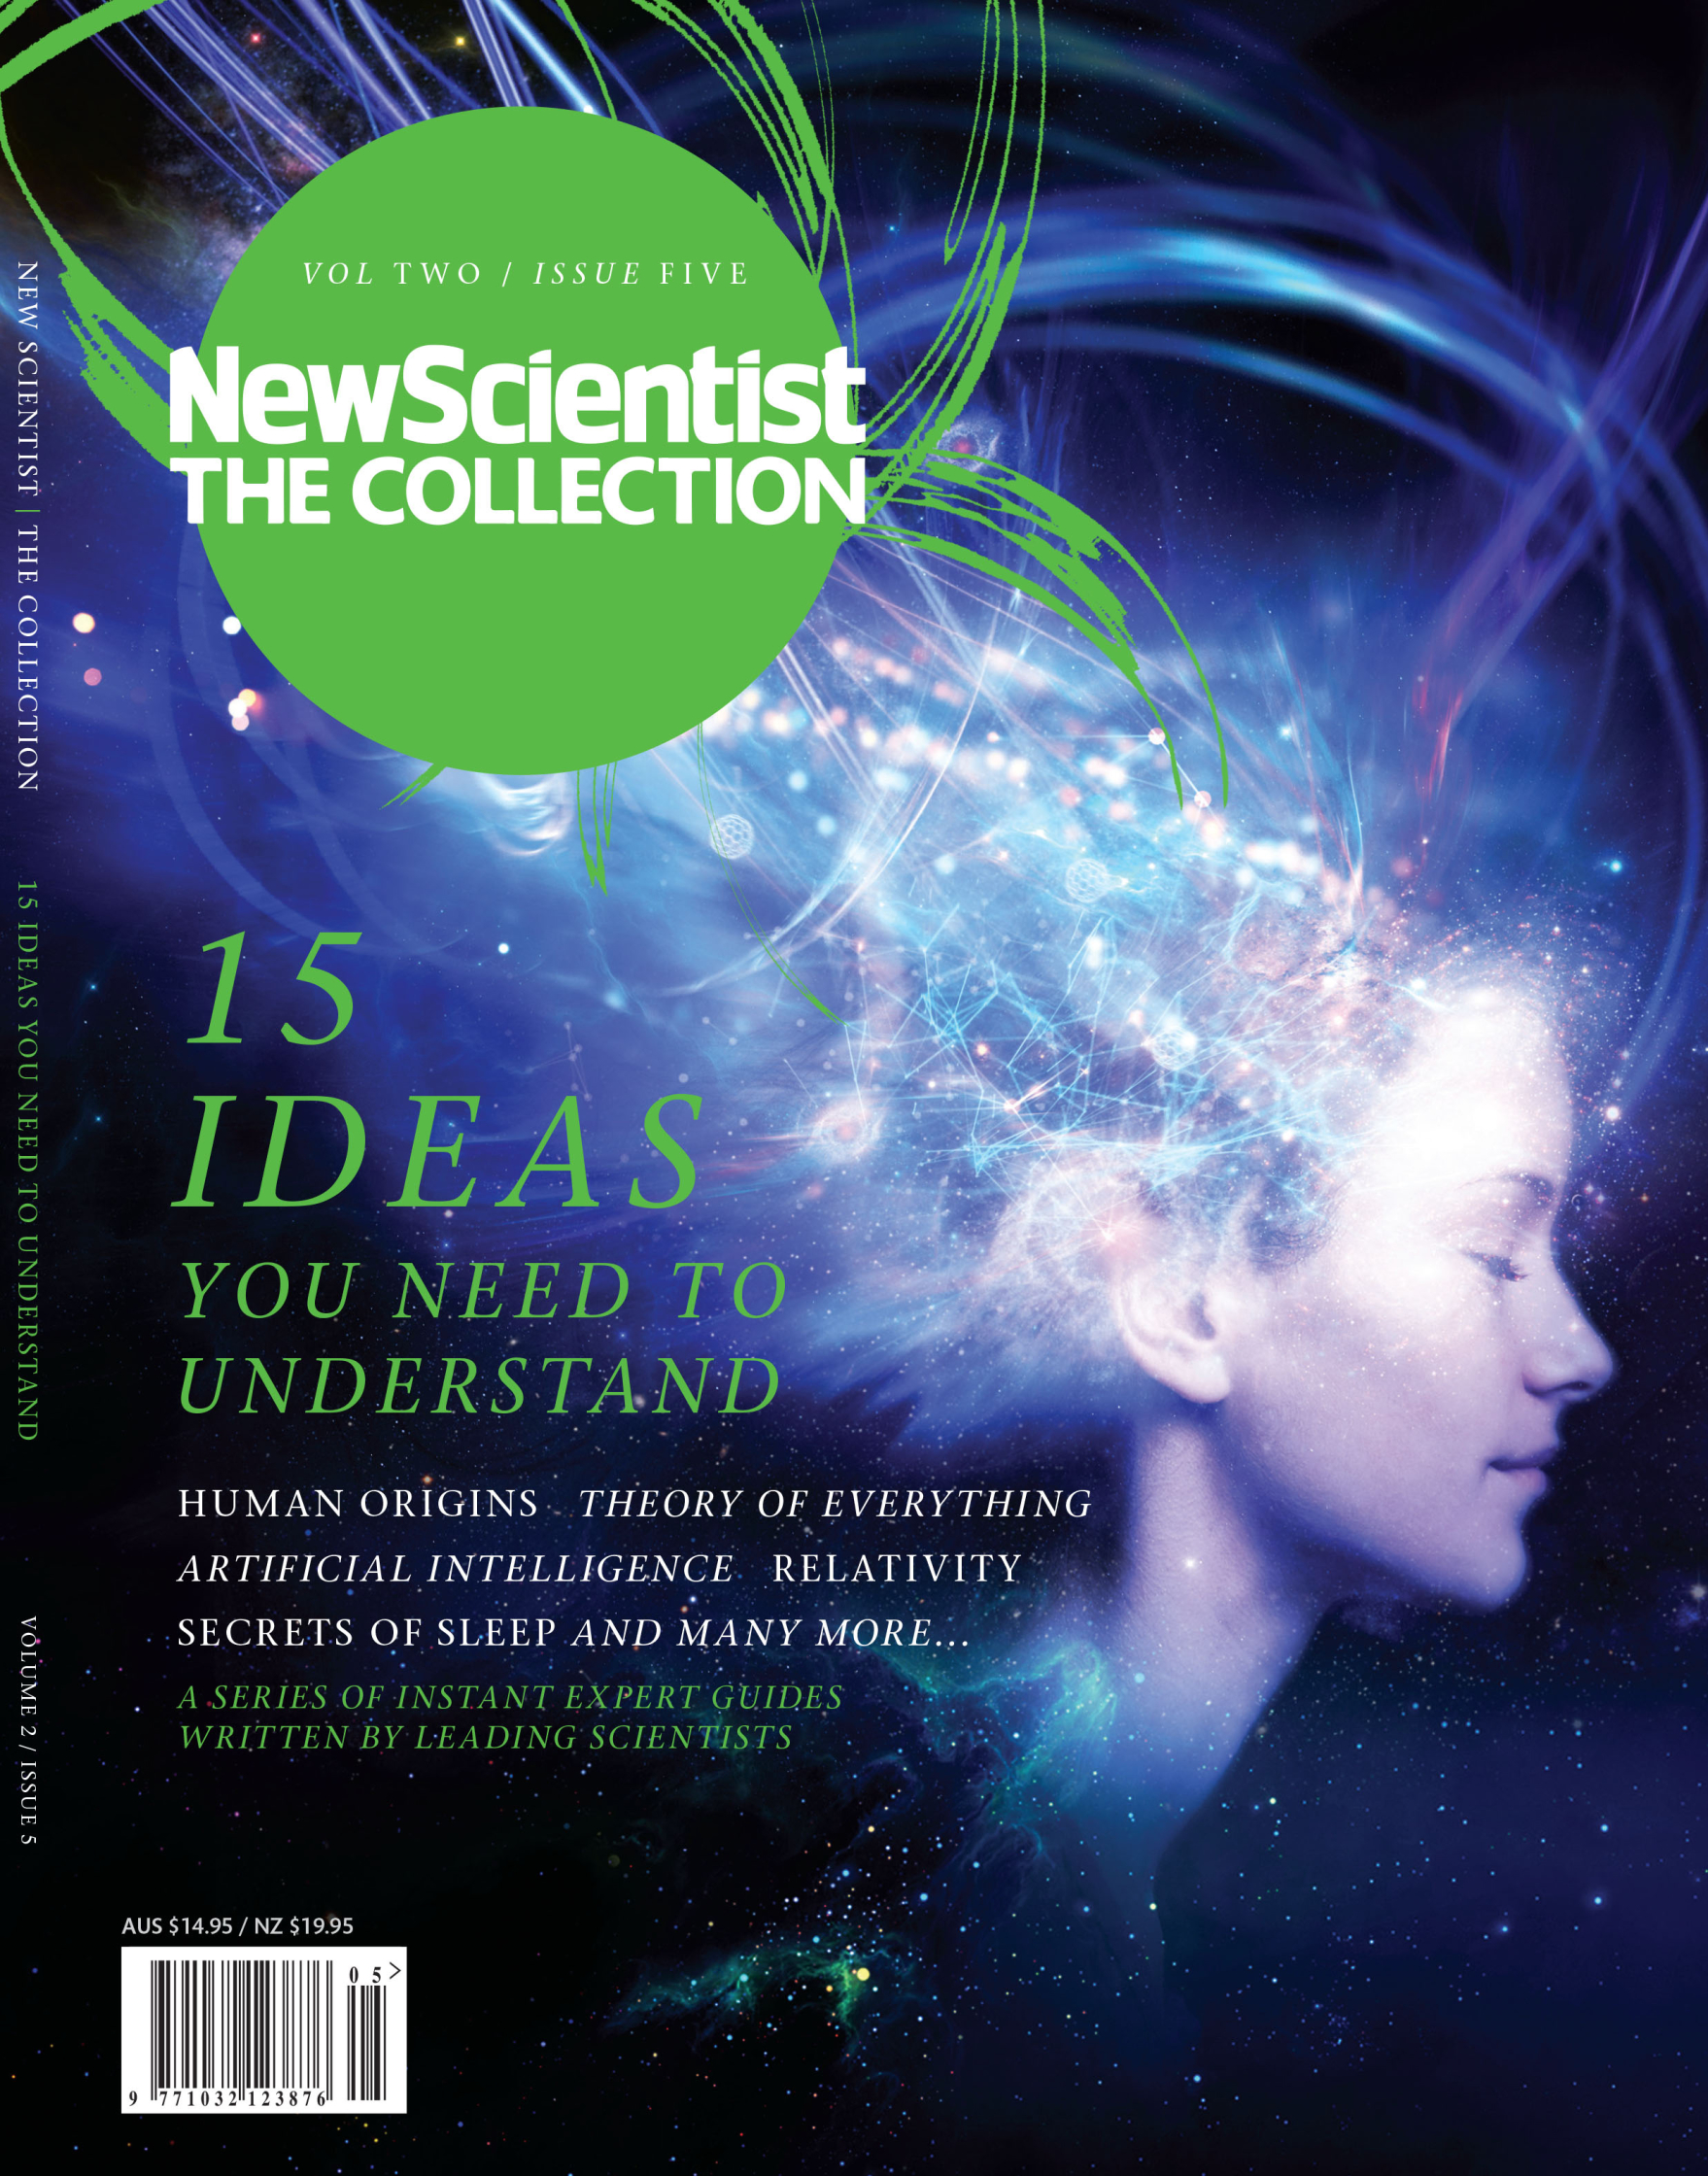 Chris Nurse THE NEW SCIENTIST COLLECTION.jpg